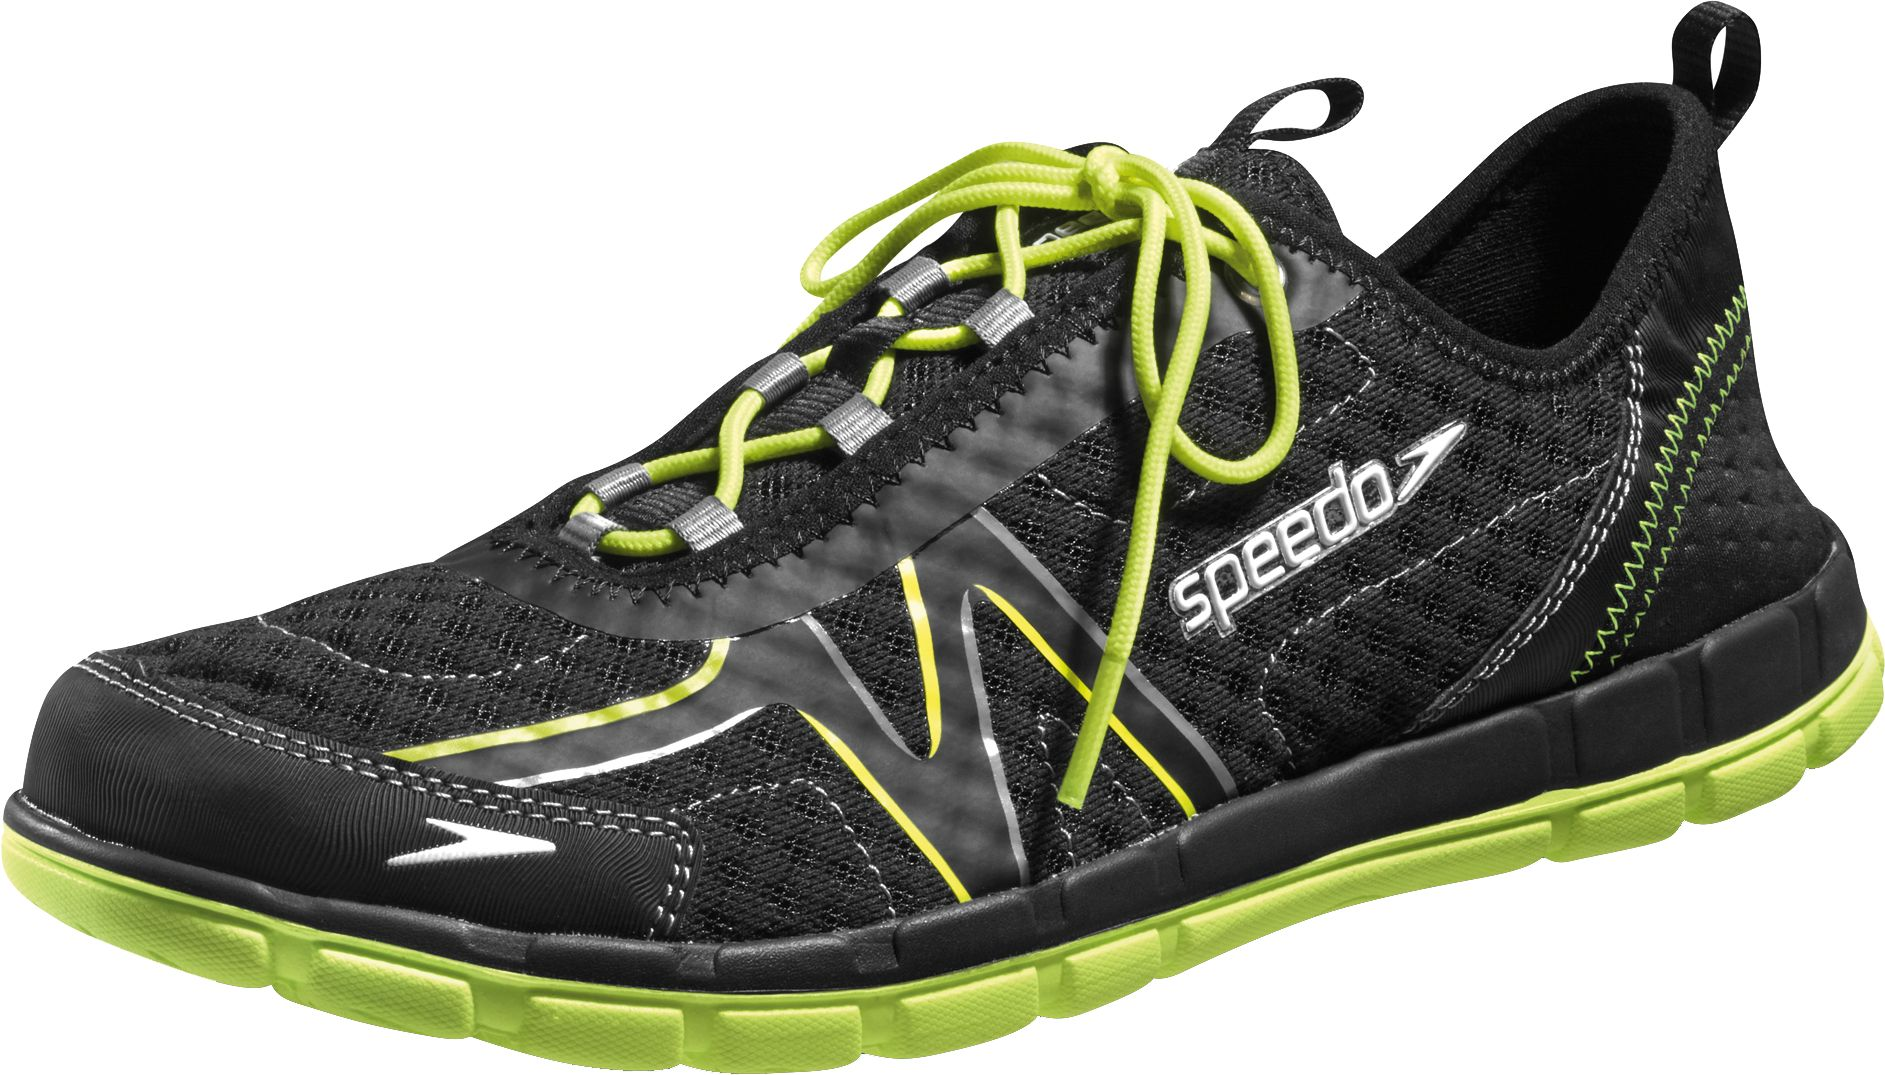 Men's Water Shoes | DICK'S Sporting Goods